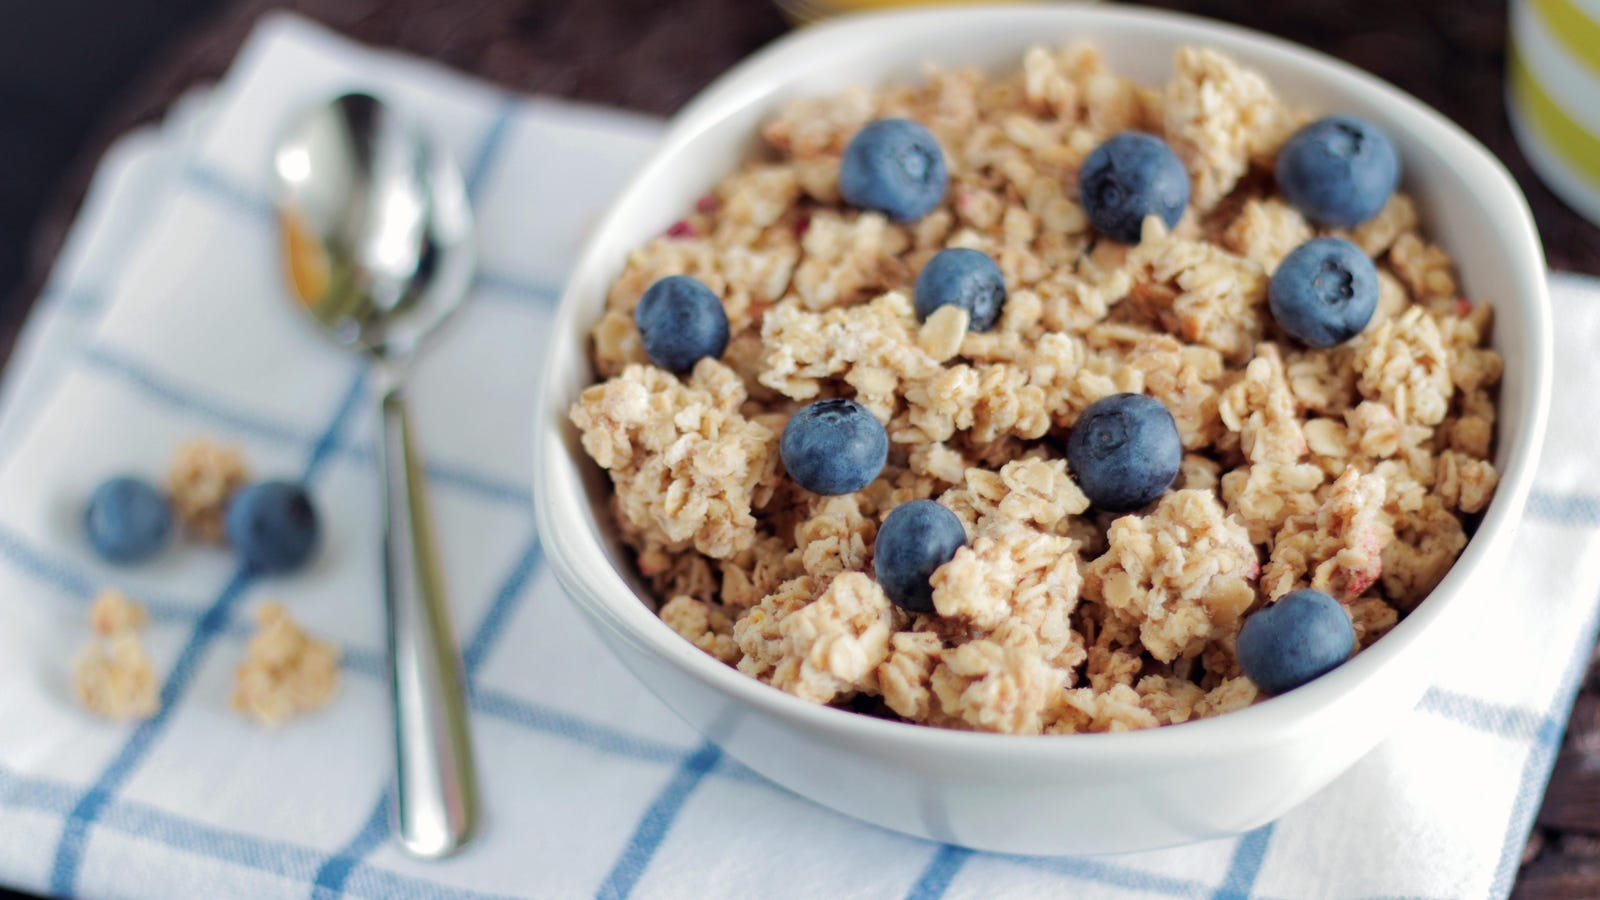 No, Your Cereal Is Not Full of Weedkiller